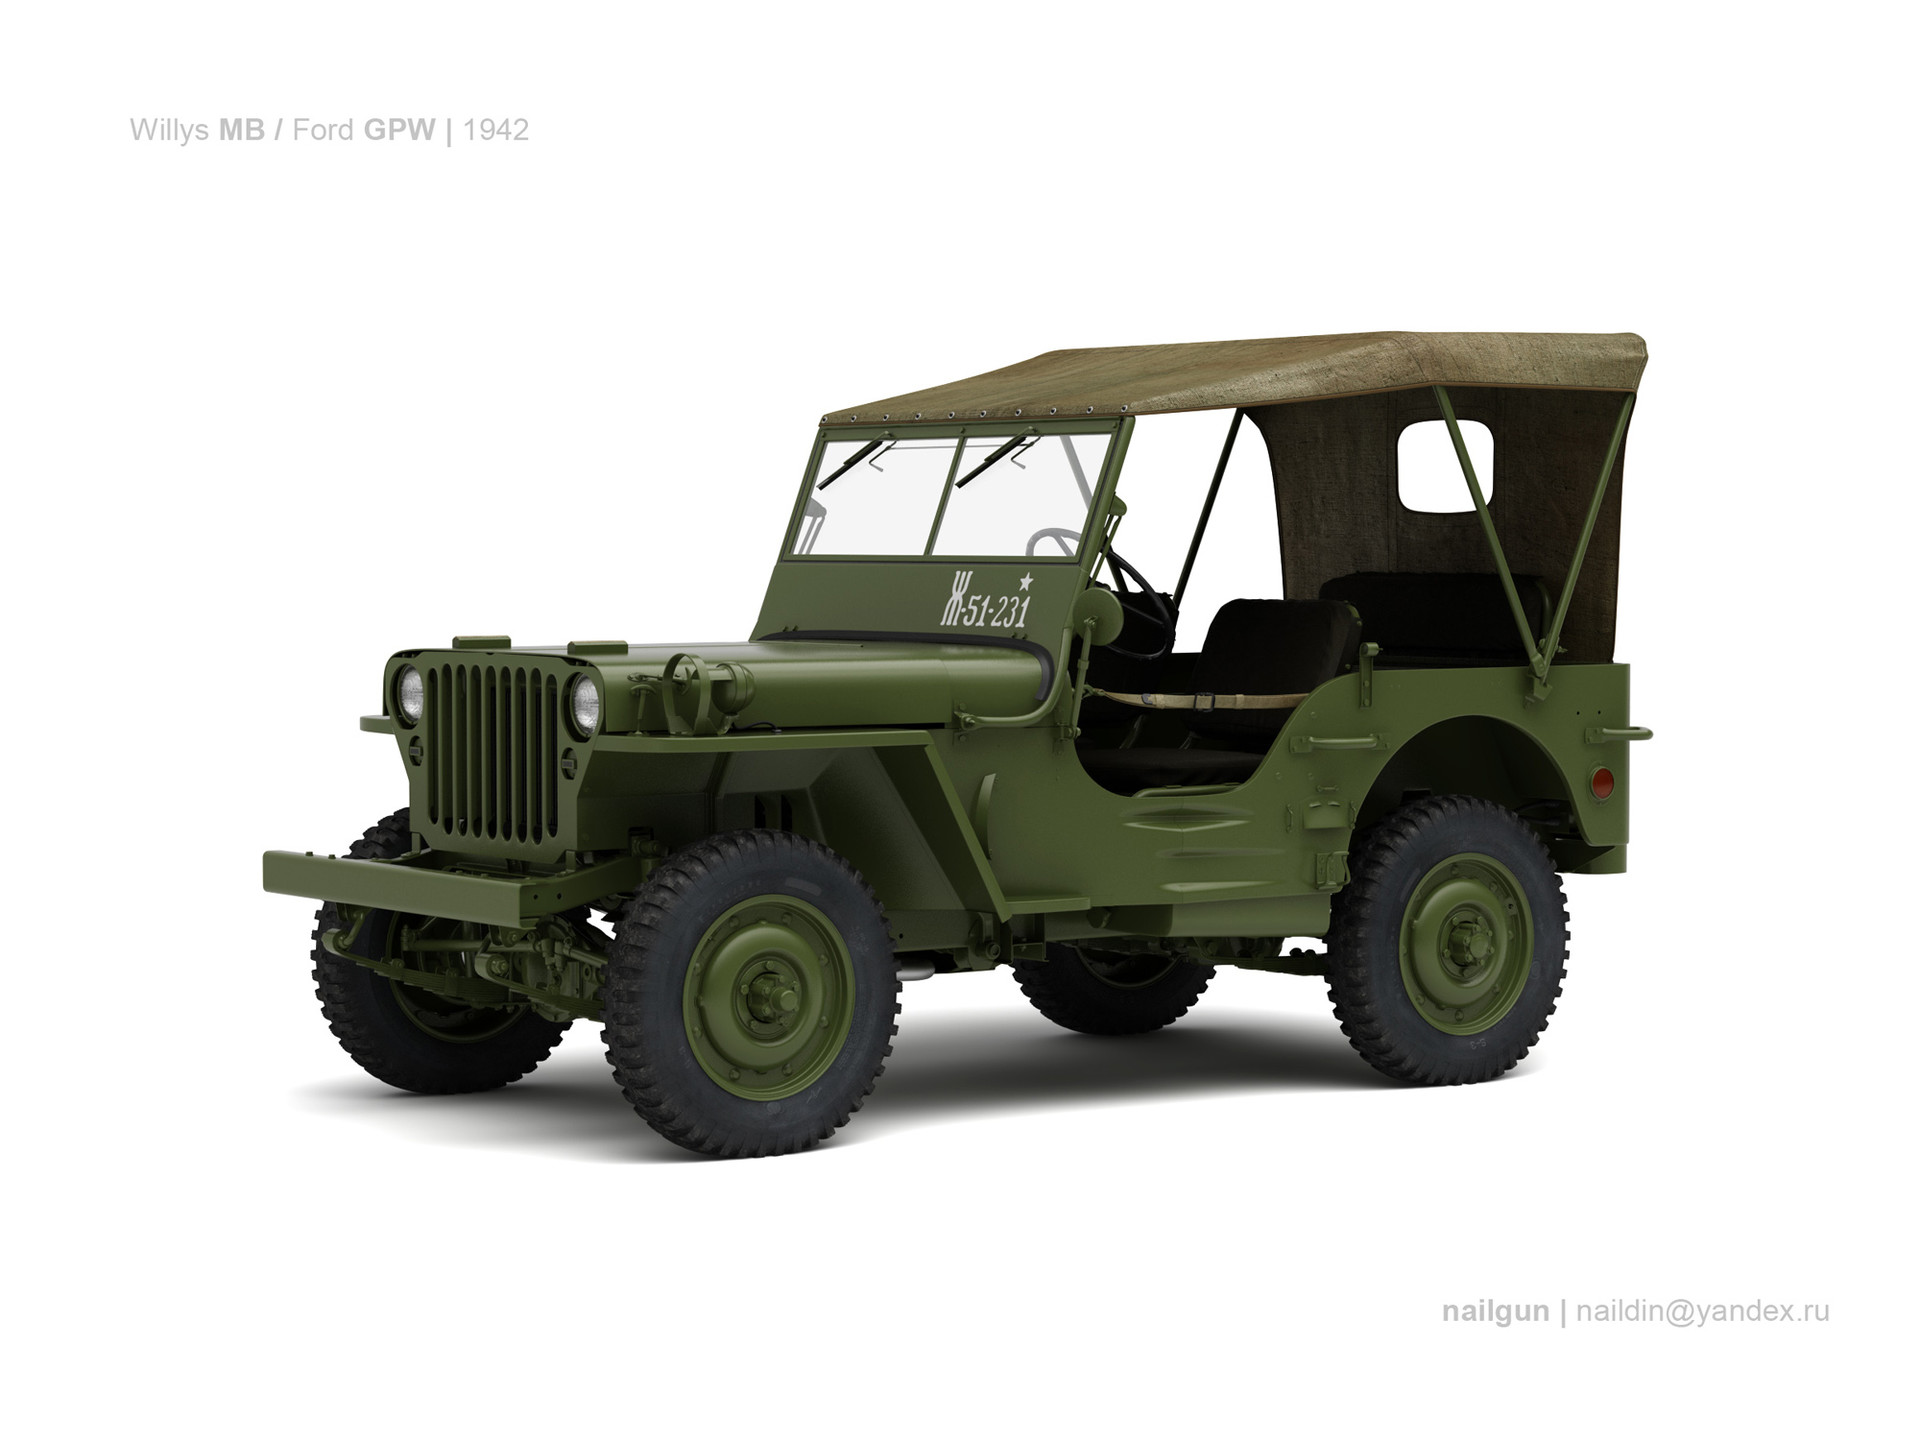 Nail khusnutdinov usa willys mb ford gpw 0